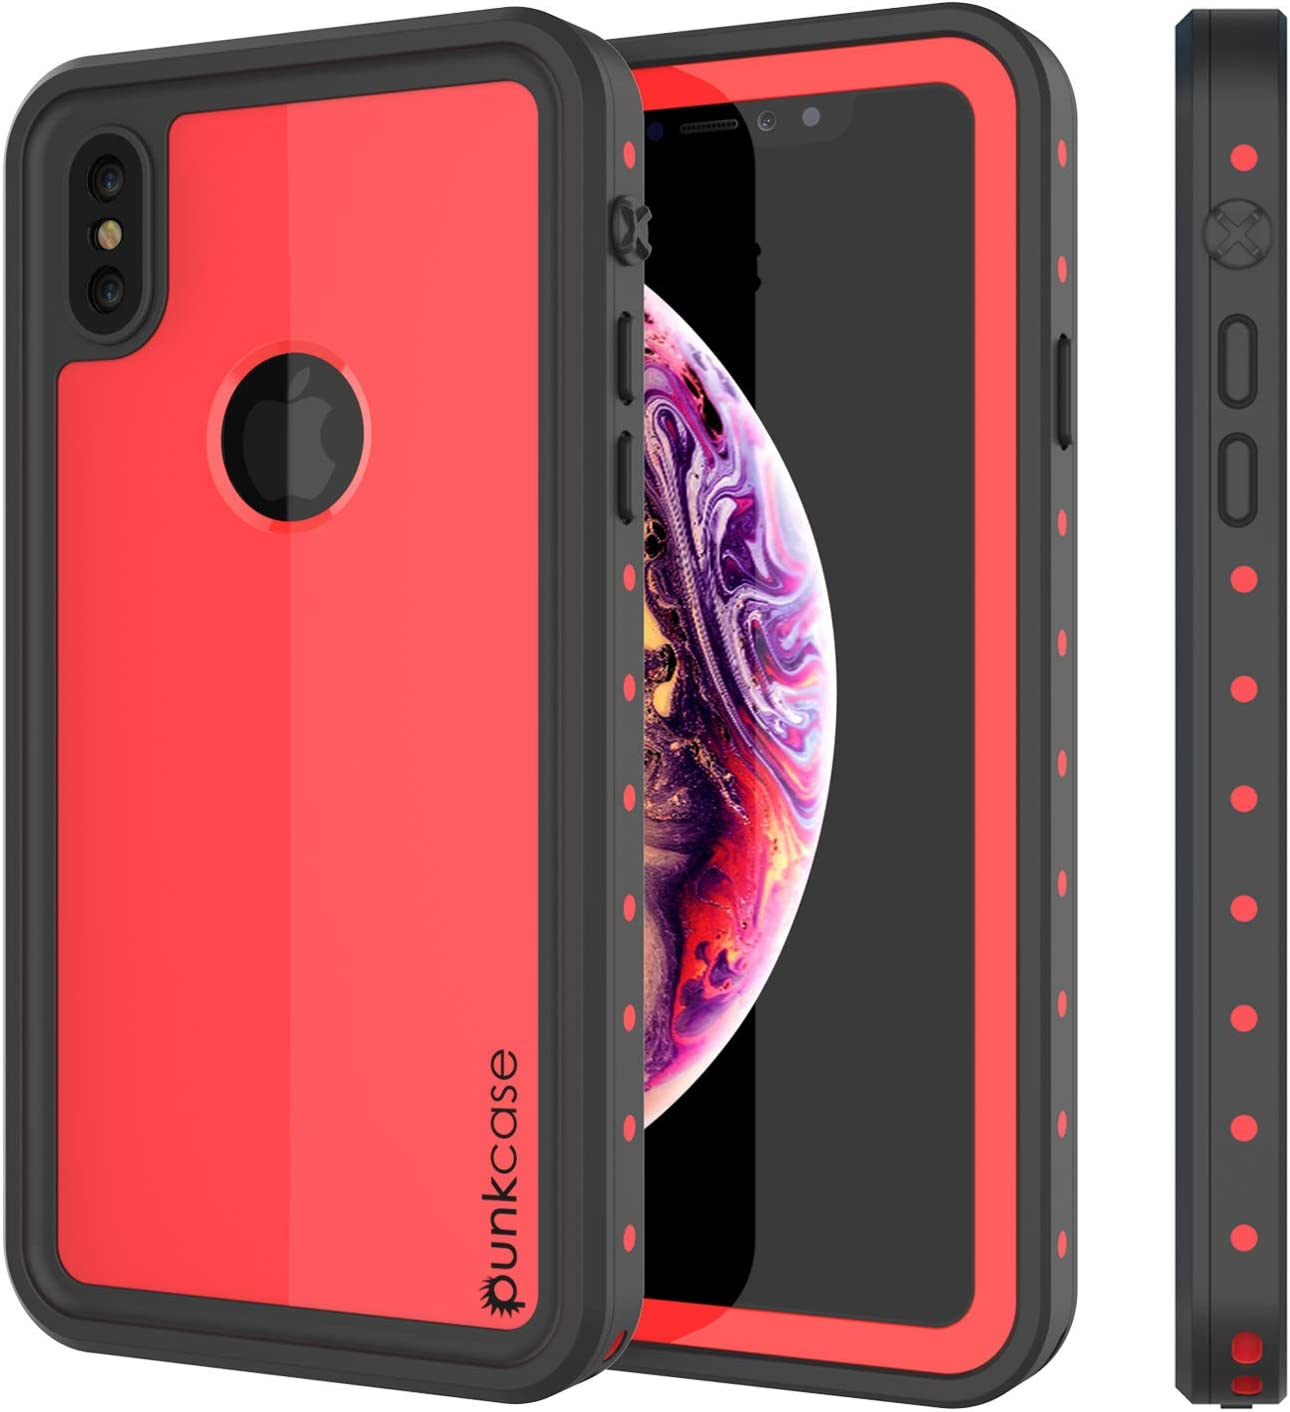 iPhone Xs Max Waterproof Case, Punkcase [StudStar Series] [Slim Fit] [IP68 Certified] [Shockproof] [Dirtproof] [Snowproof] Armor Cover for Apple iPhone Xs Max [Red]